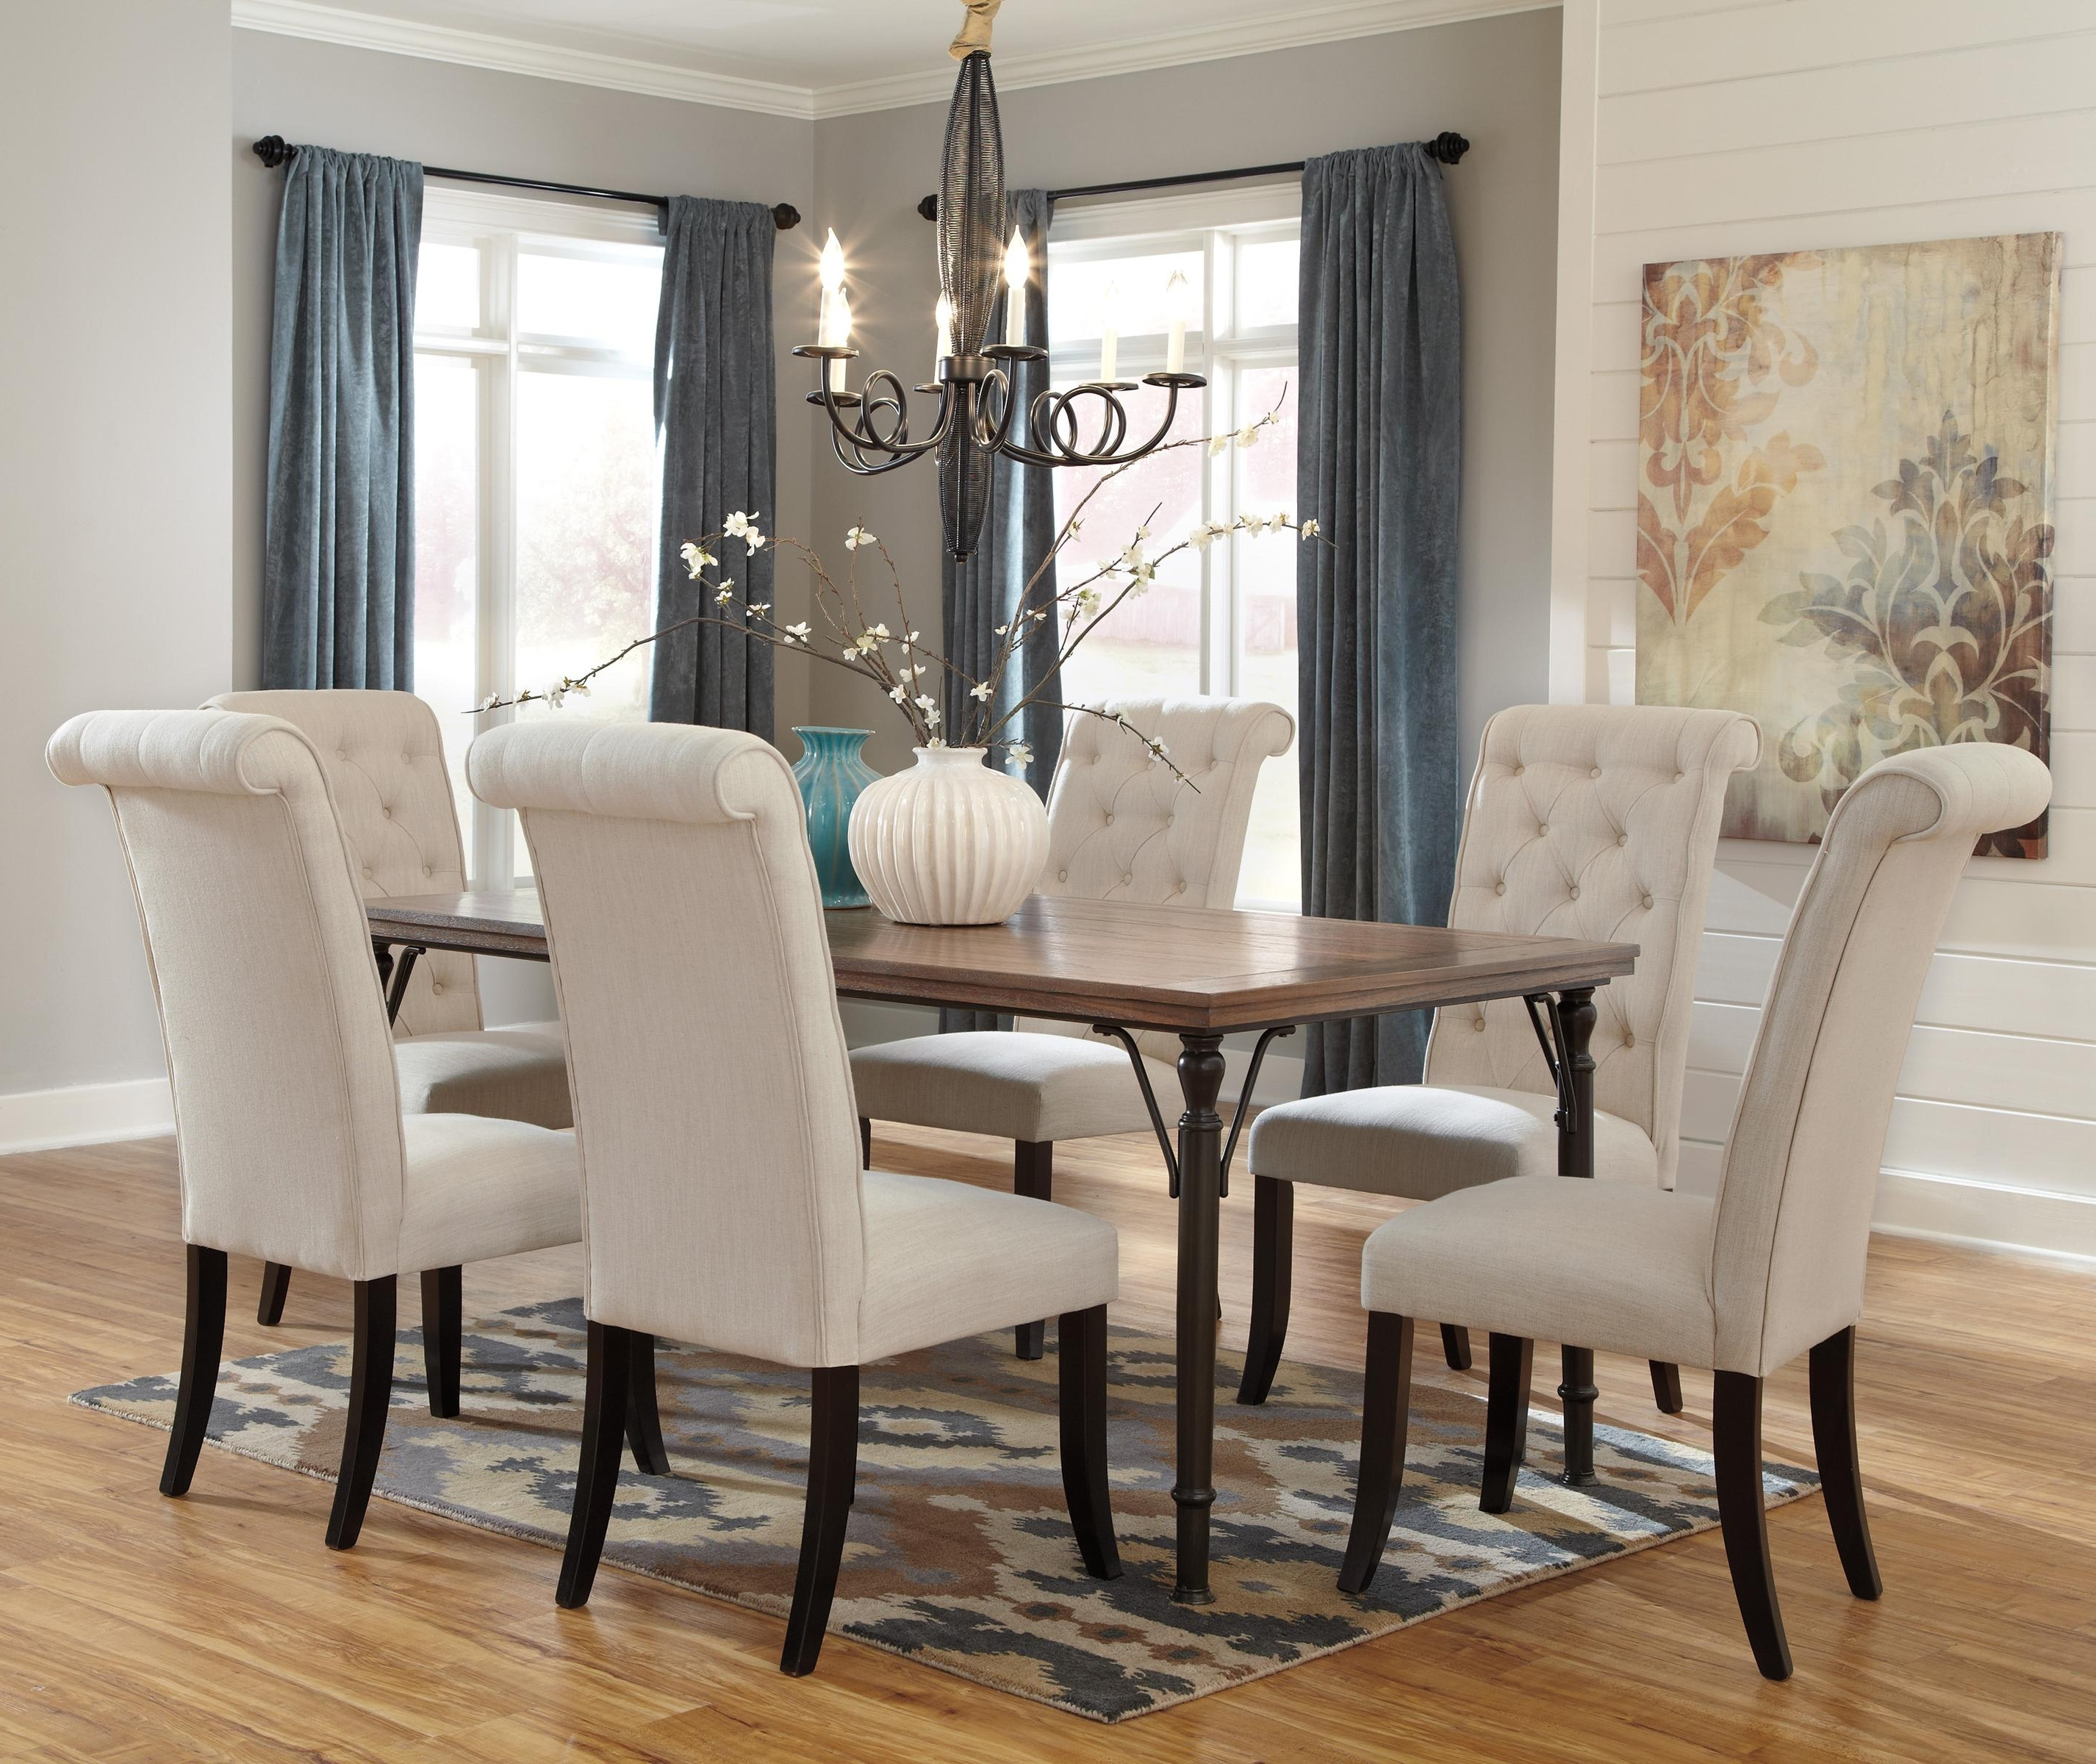 Most Current Parquet 6 Piece Dining Sets For 7 Piece Rectangular Dining Room Table Set W/ Wood Top & Metal Legs (View 7 of 25)